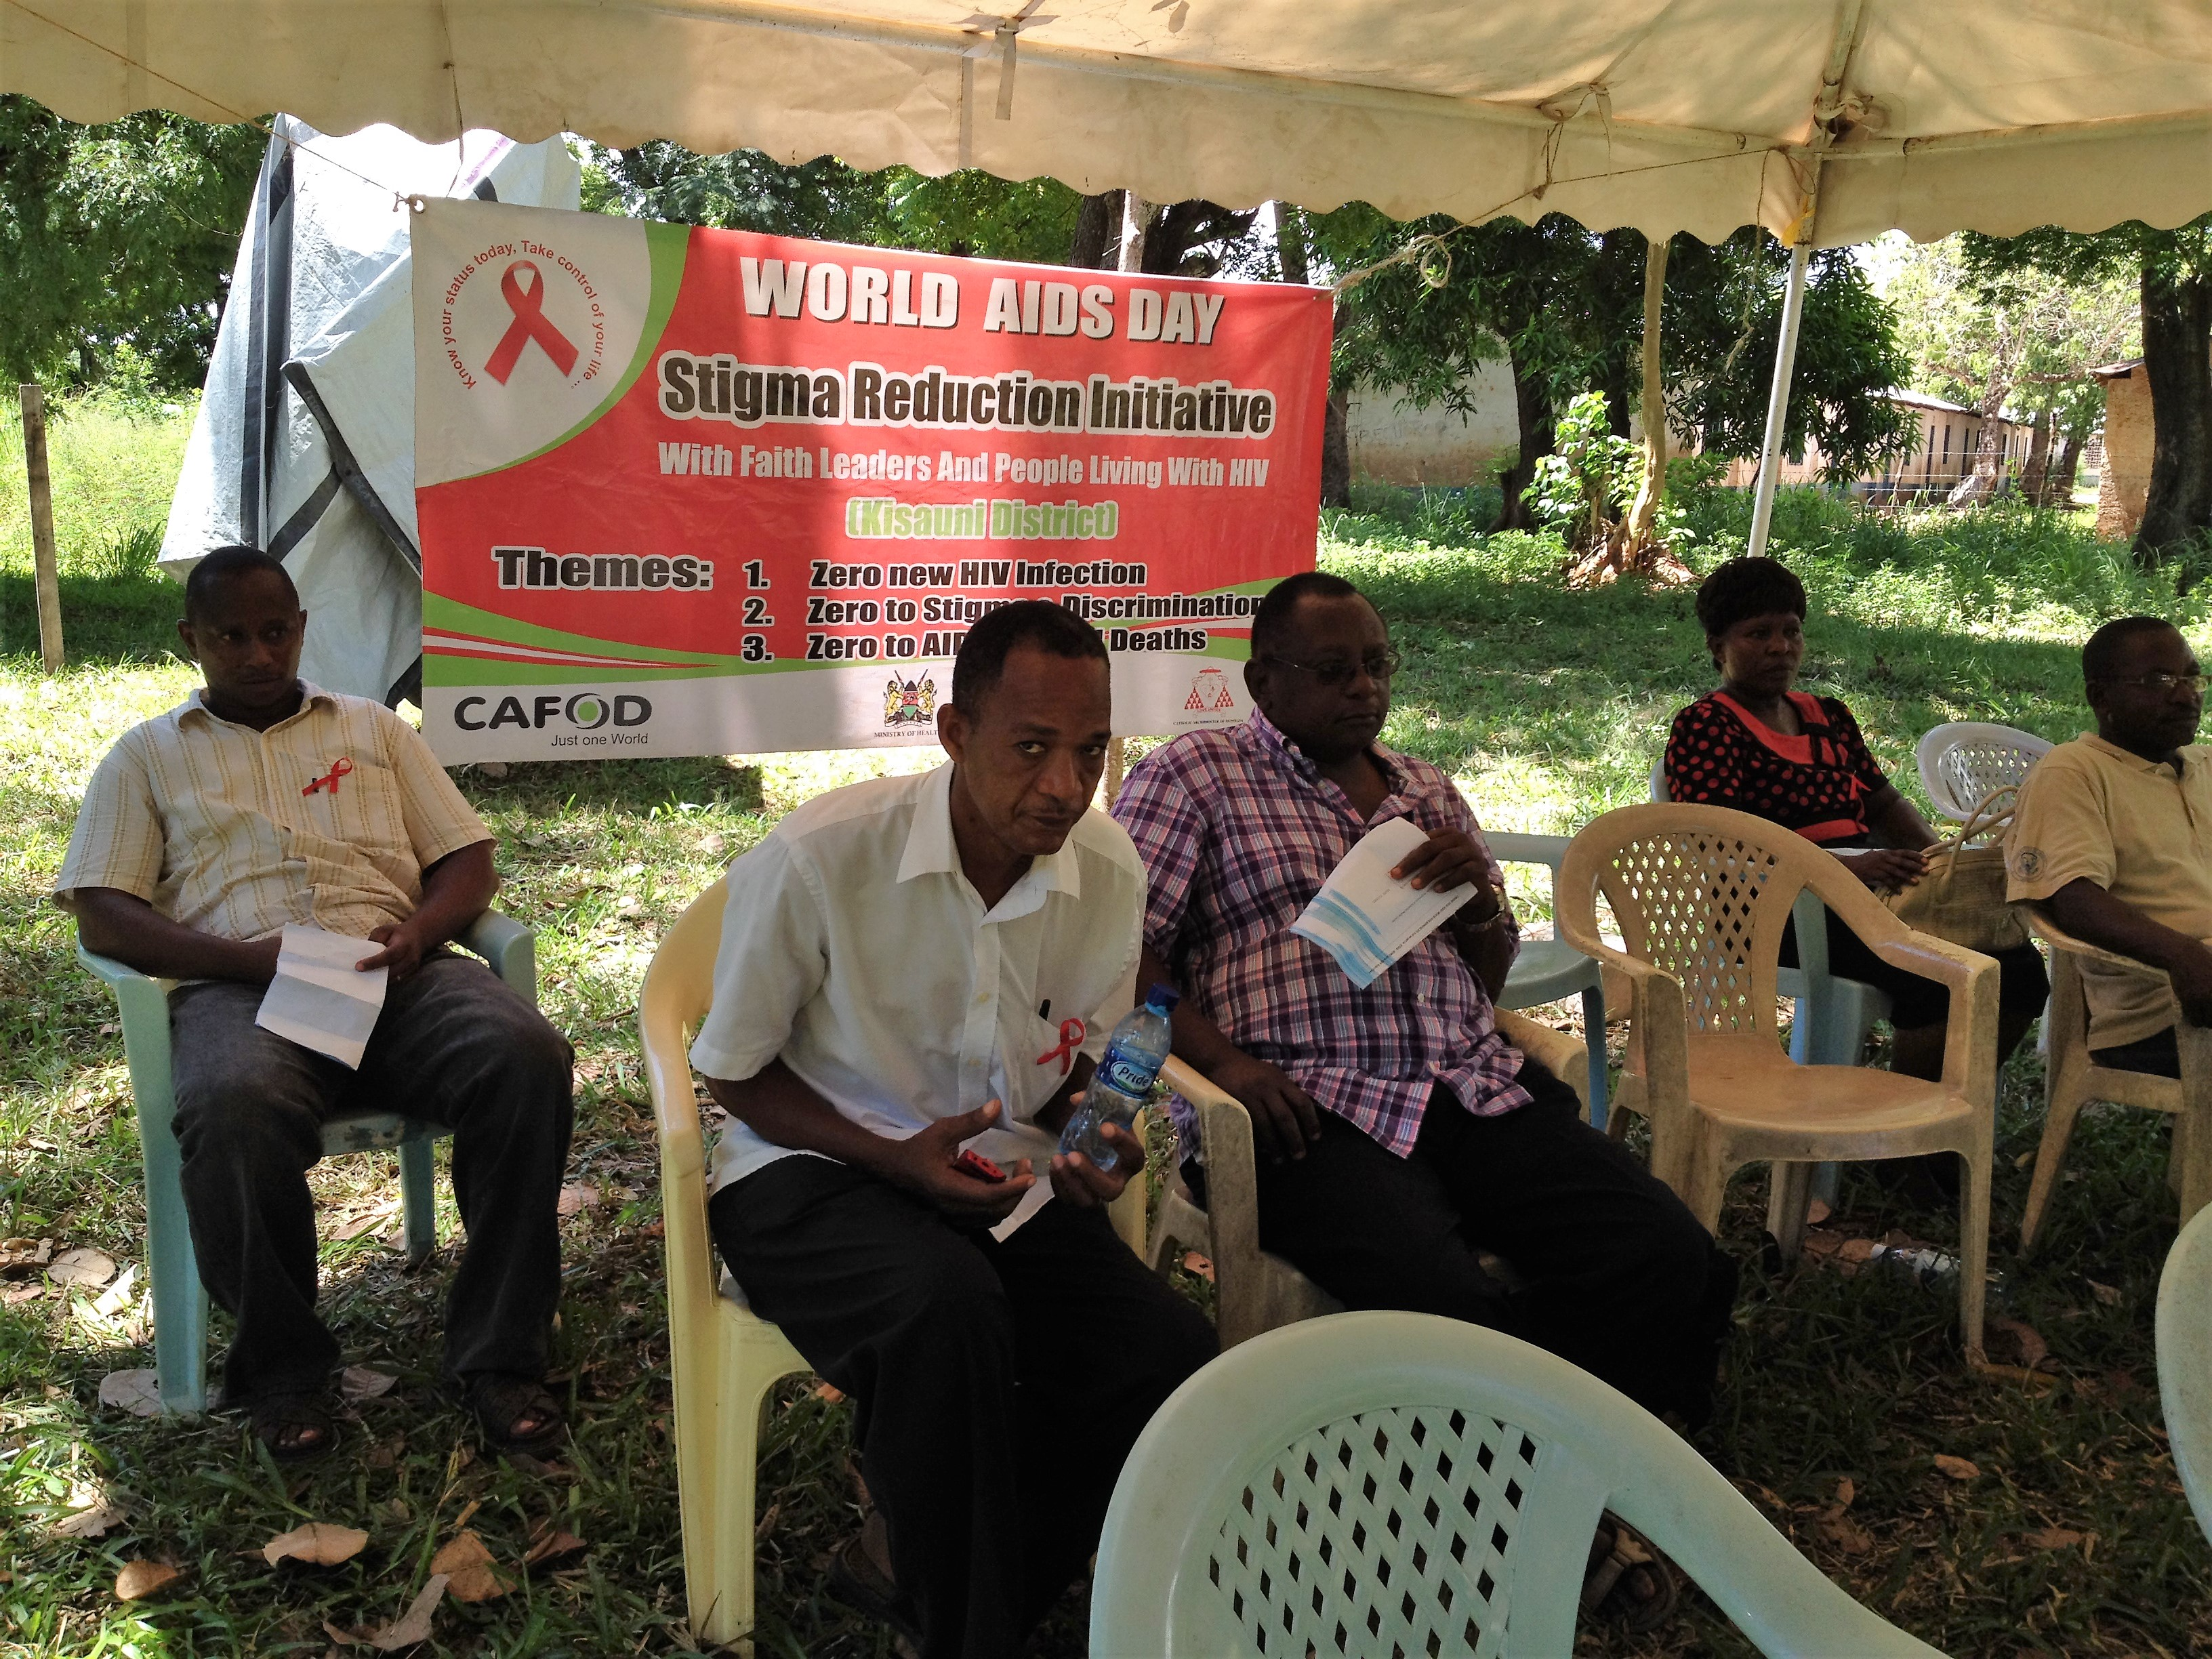 HIV/AIDS education on World AIDS Day in Kenya in 2012